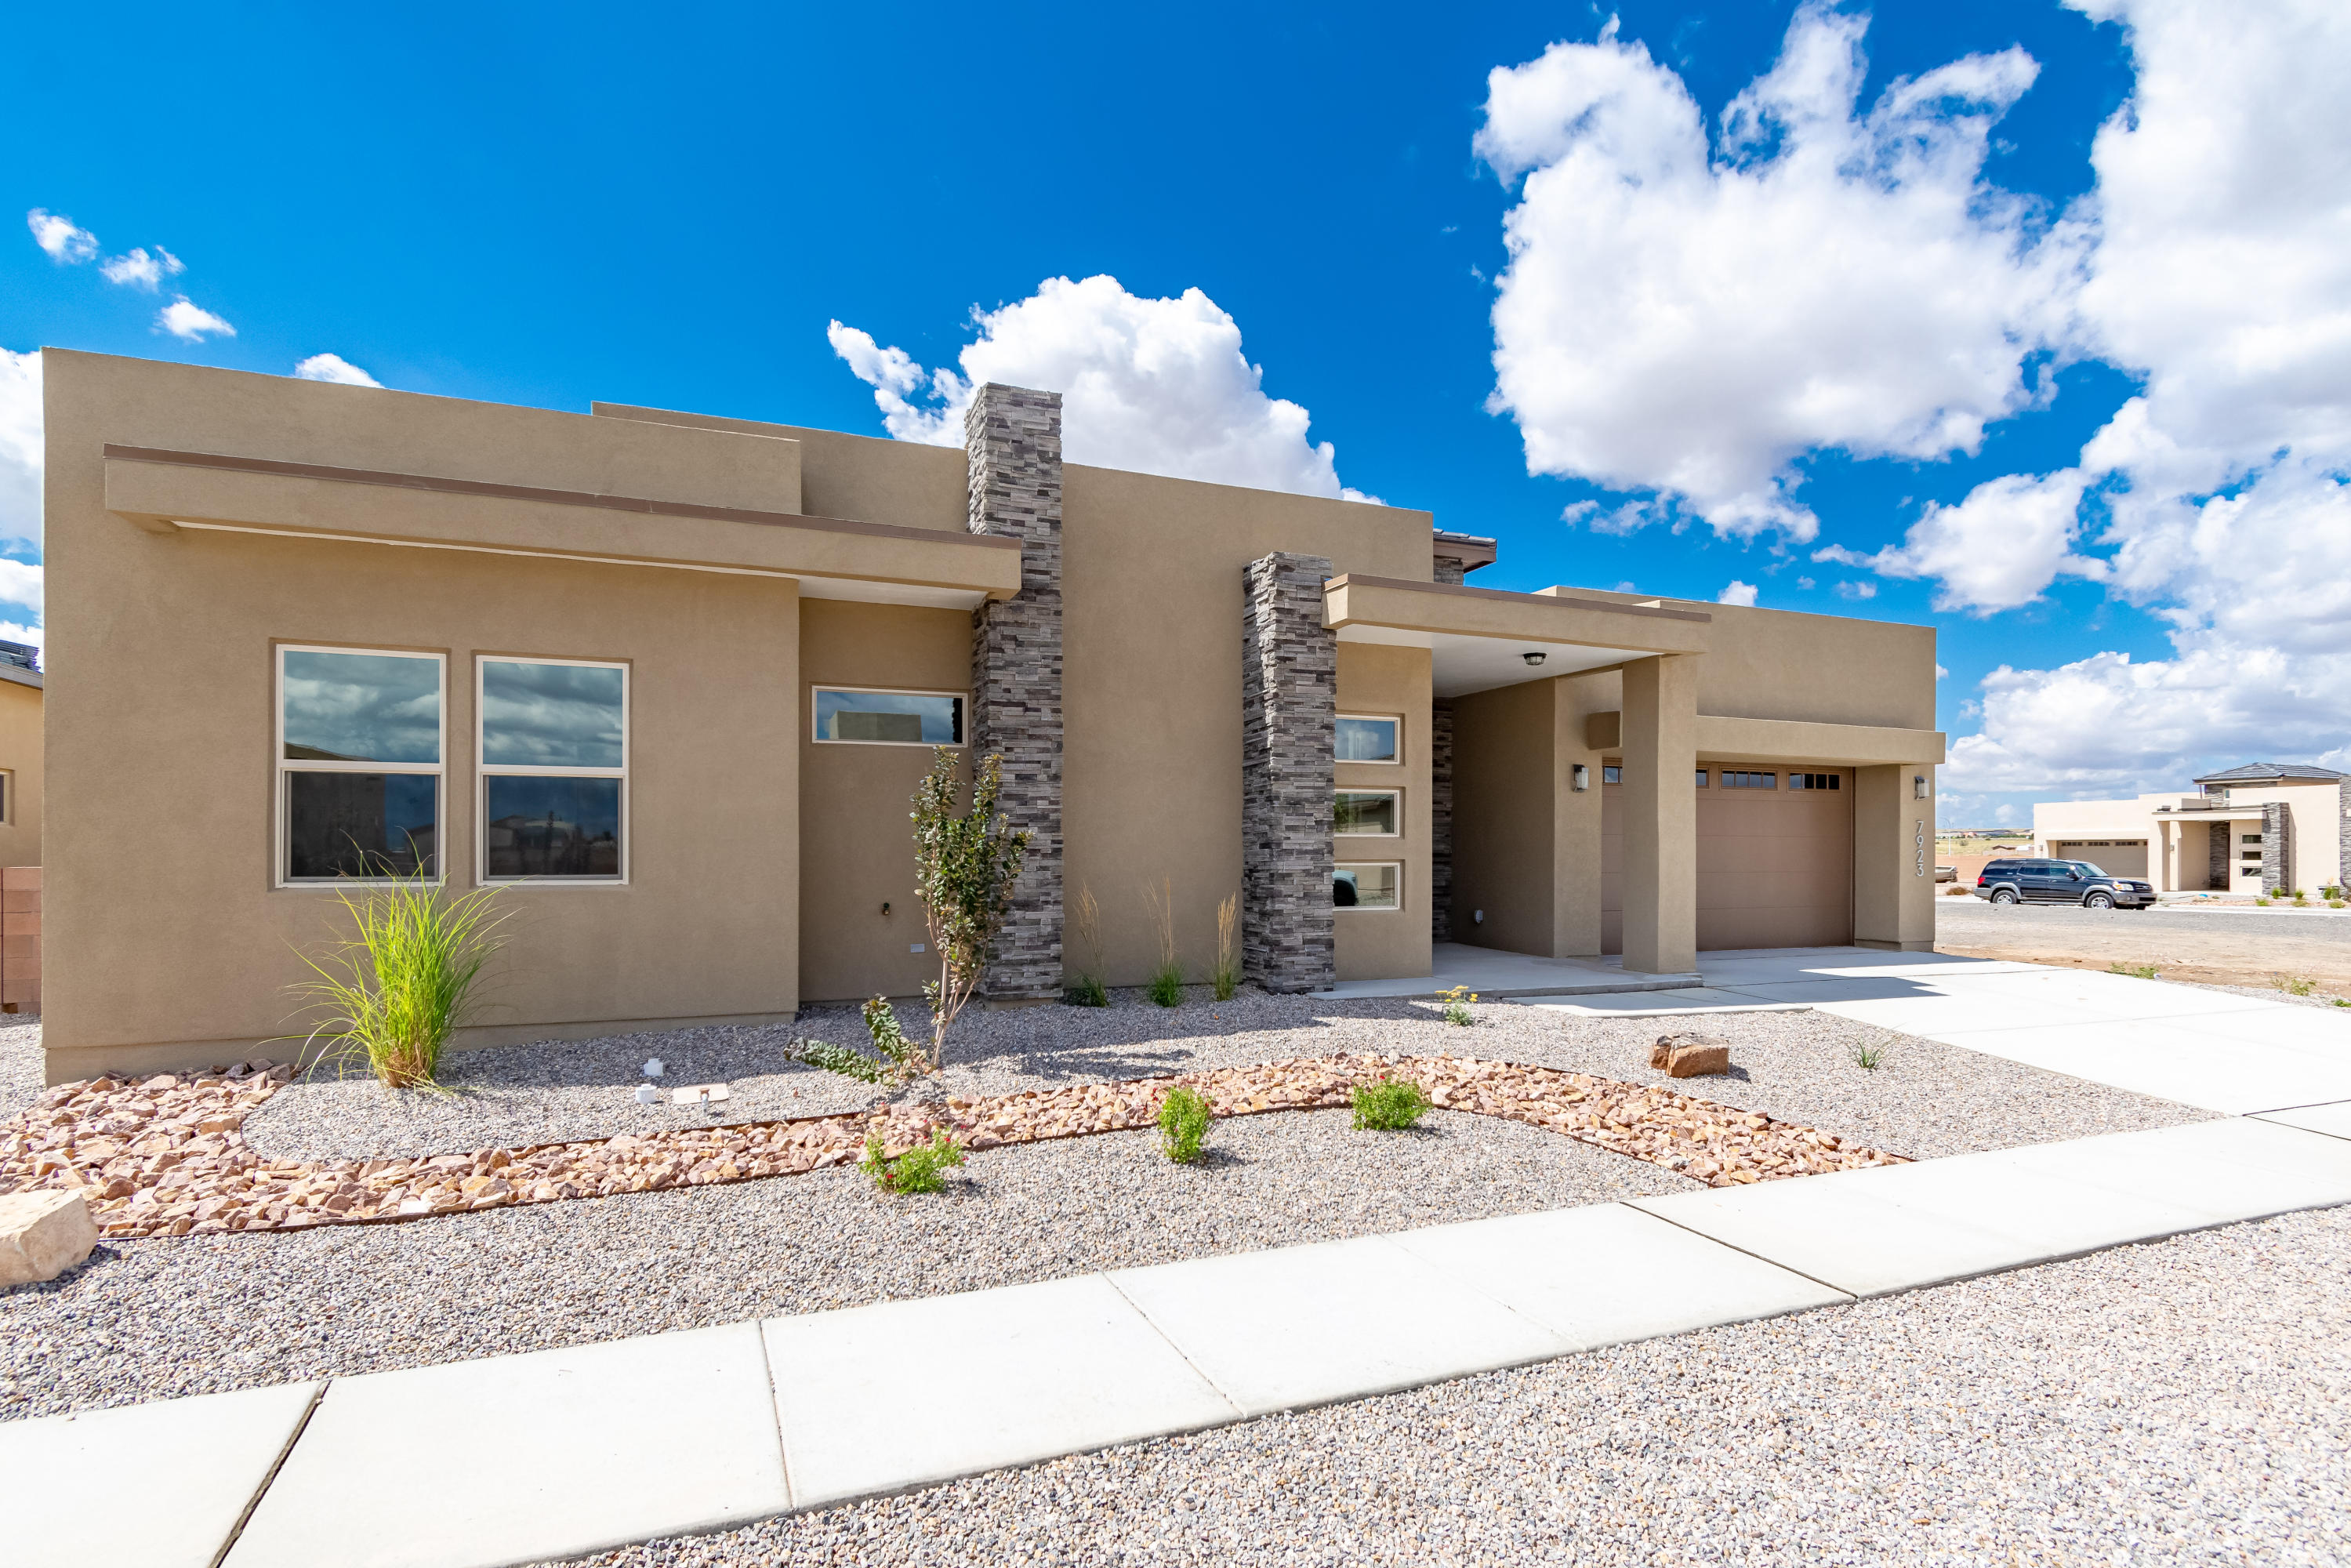 7923 NW Teaberry Road, Northwest Albuquerque and Northwest Heights, New Mexico